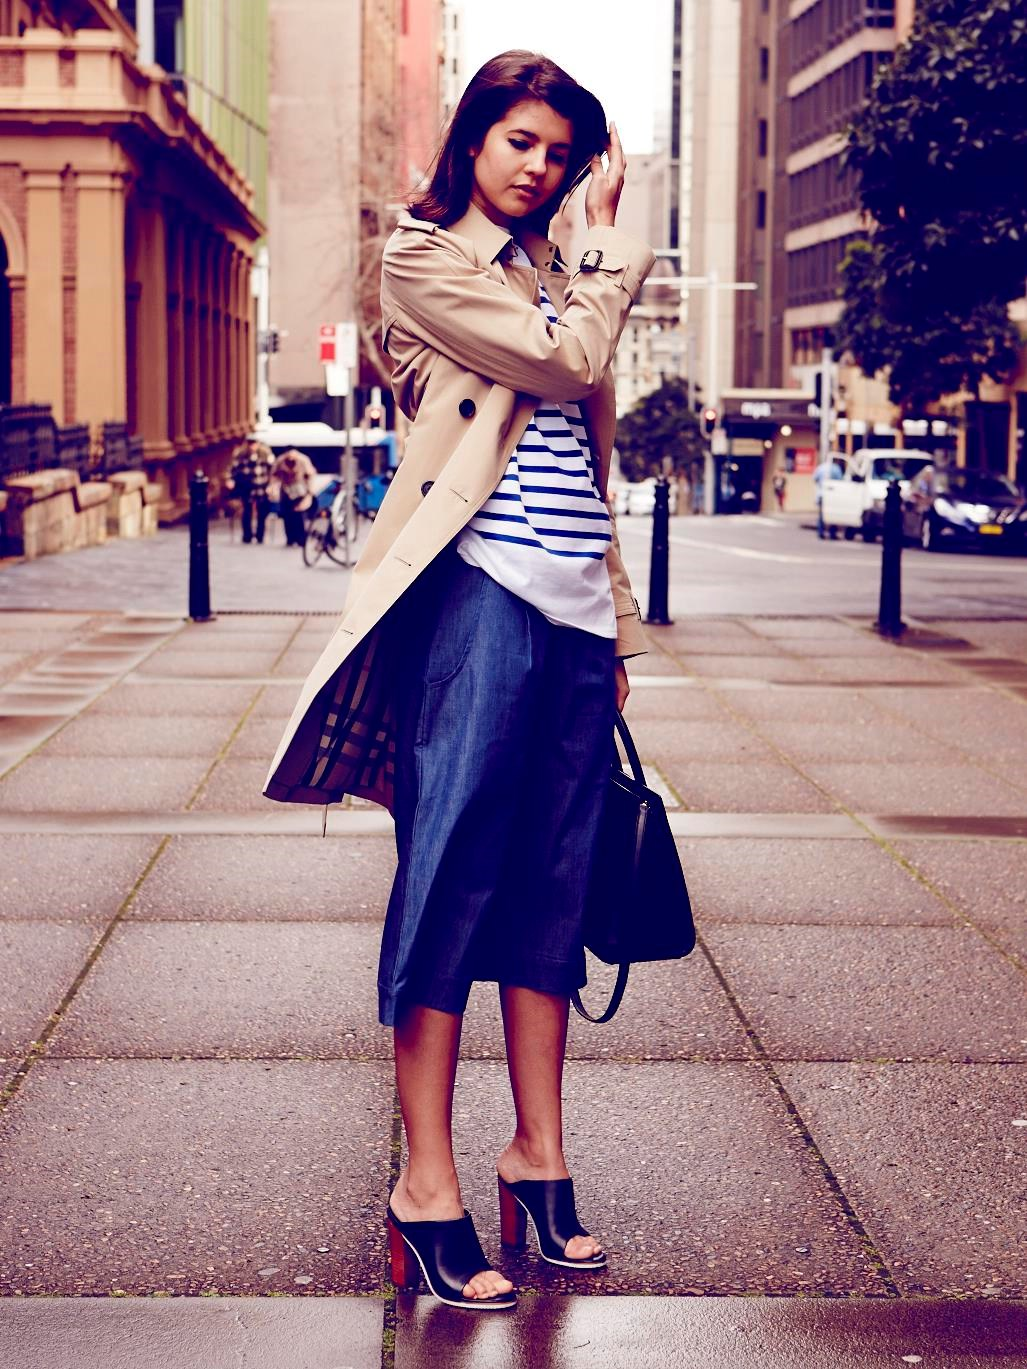 "<strong>TALISA SUTTON DESIGNER<br></strong> WEARS: <strong>The Westminster</strong> <br> (classic fit, lightly tapered waist, raglan sleeves)<br><br> ""A stripy Breton is my everyday top of choice and classic-chic worn under a beige trench. I love the look with denim culottes (a new trans-seasonal favourite) and the wide-leg silhouette balances my heeled Tibi mules.""<br><br> Trench, $2,495, Burberry, burberry.com; top, $179, Saint James, tuchuzy.com; culottes, $119, Cooper St, cooperst.com.au; mules, $419, Tibi, shopbop.com; bag, $3,300, Saint Laurent, Cosmopolitan Shoes, (02) 9362 0510"